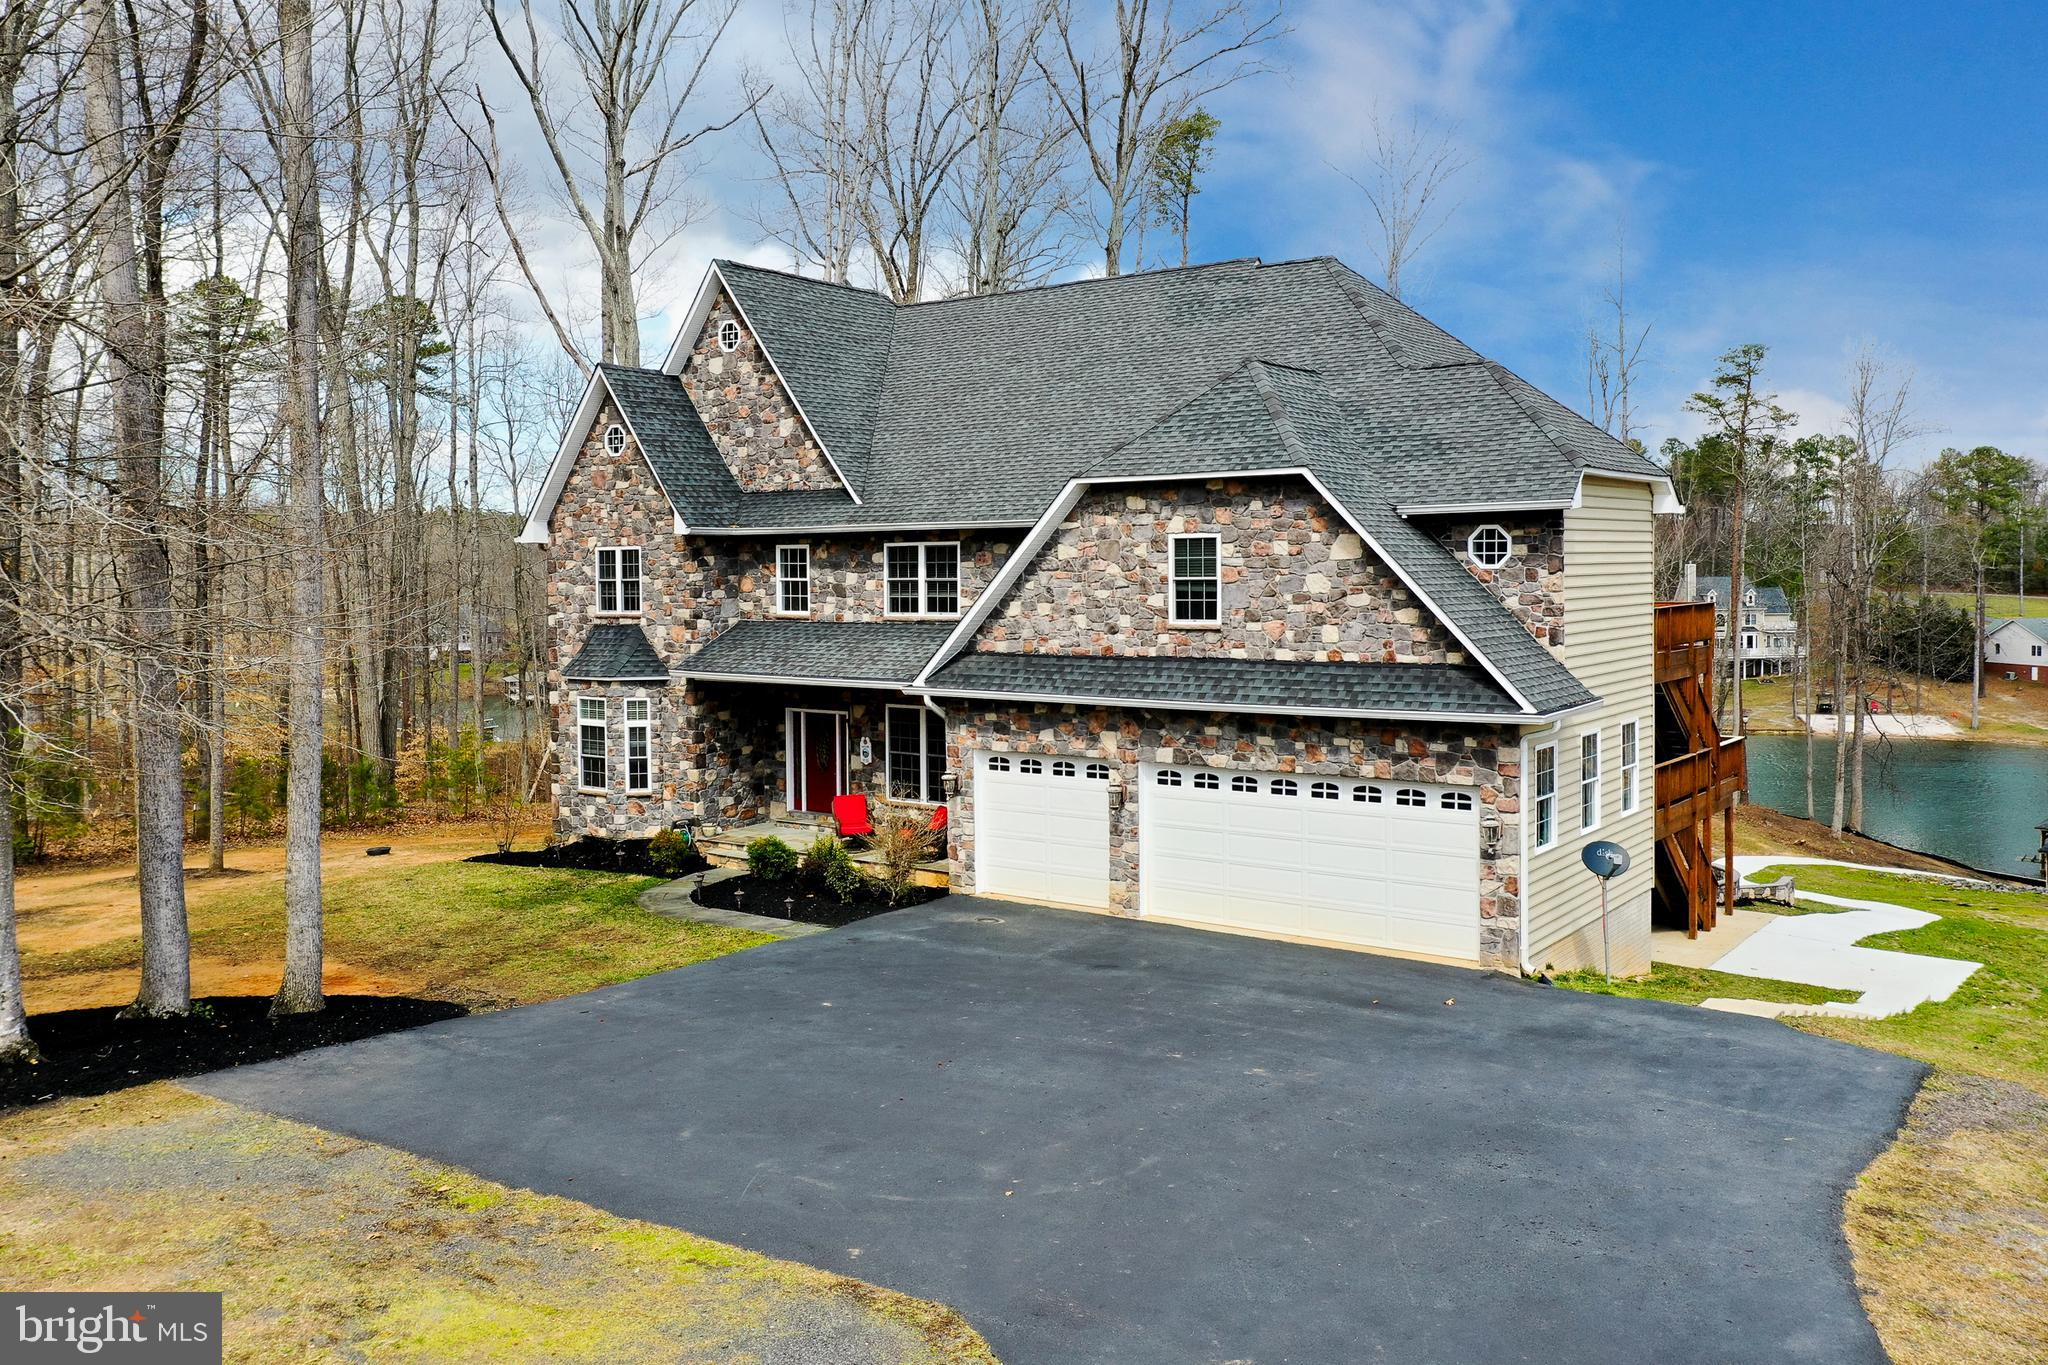 1915 LAKE FOREST DRIVE, MINERAL, VA 23117